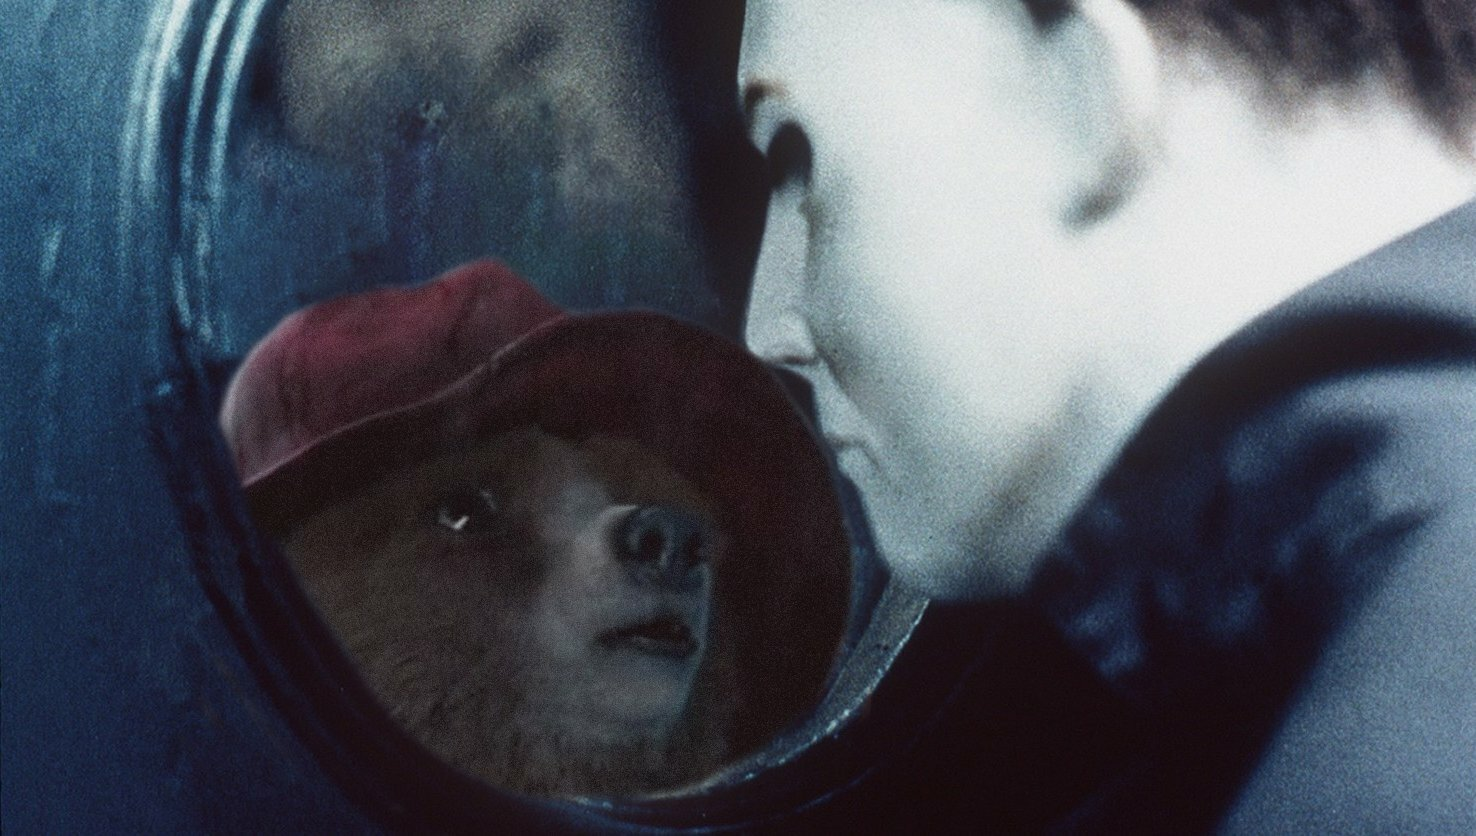 An internet hero is Photoshopping Paddington Bear into a different movie every day